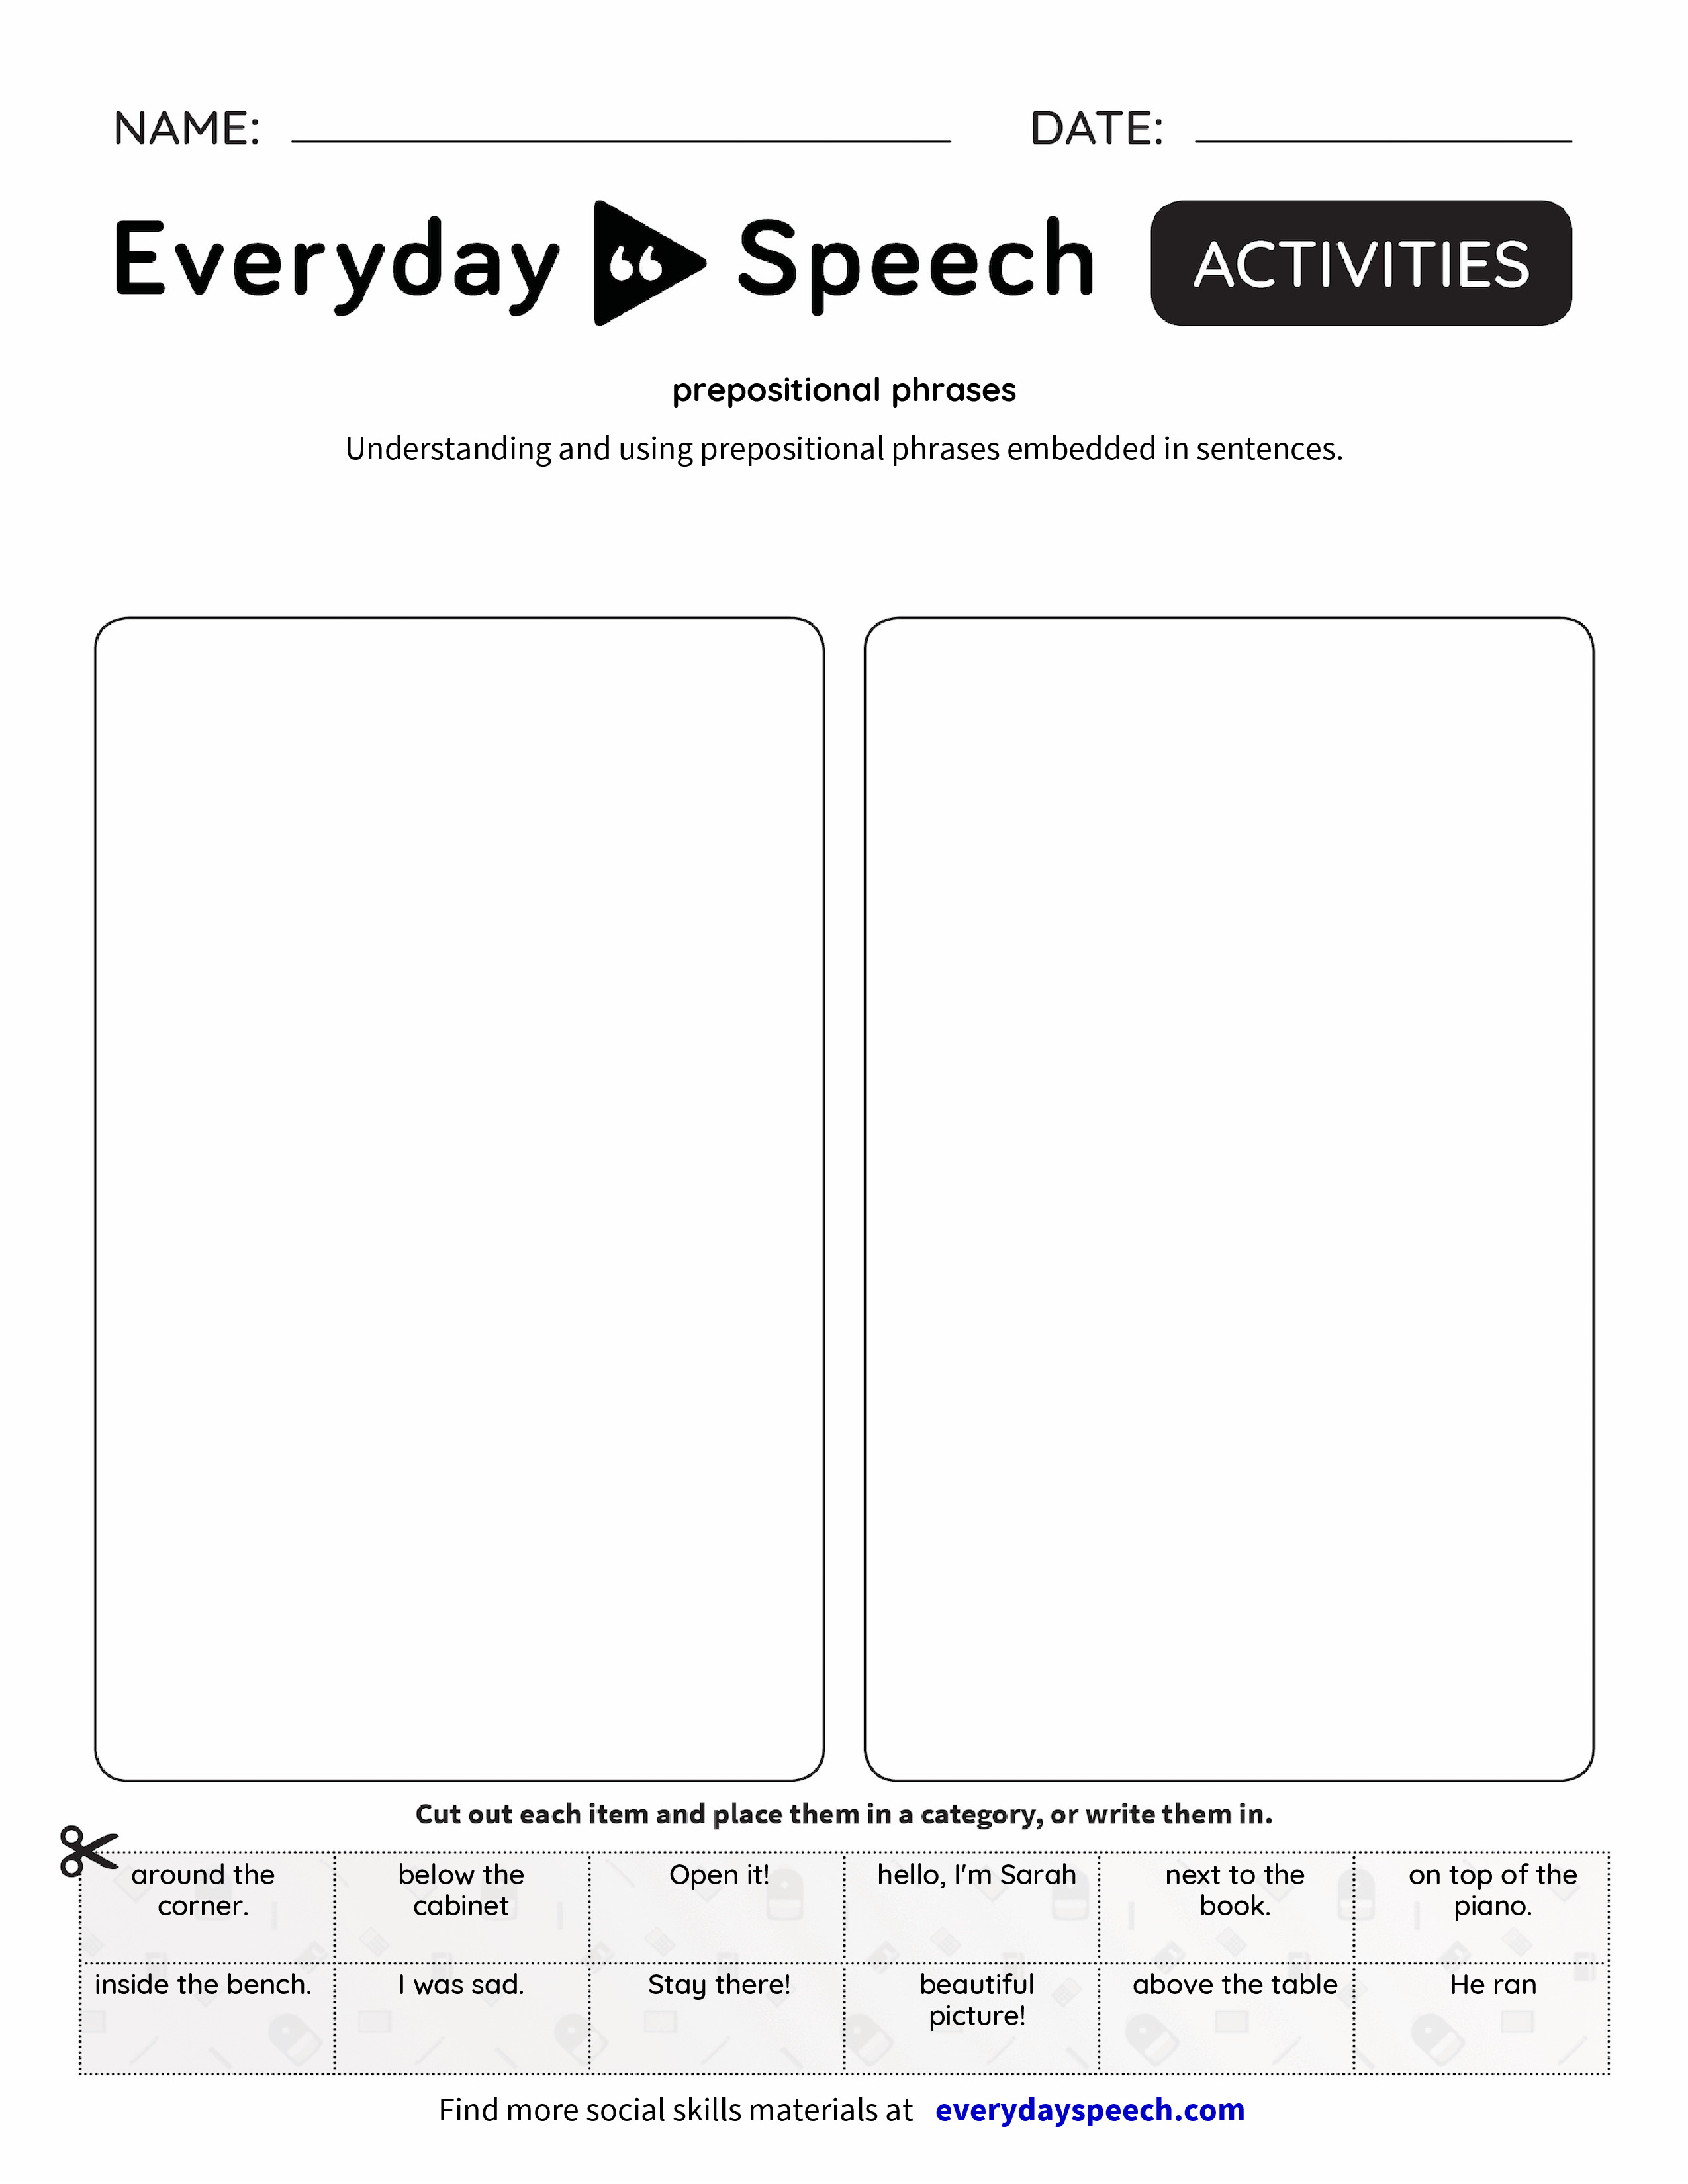 prepositional phrases - Everyday Speech - Everyday Speech